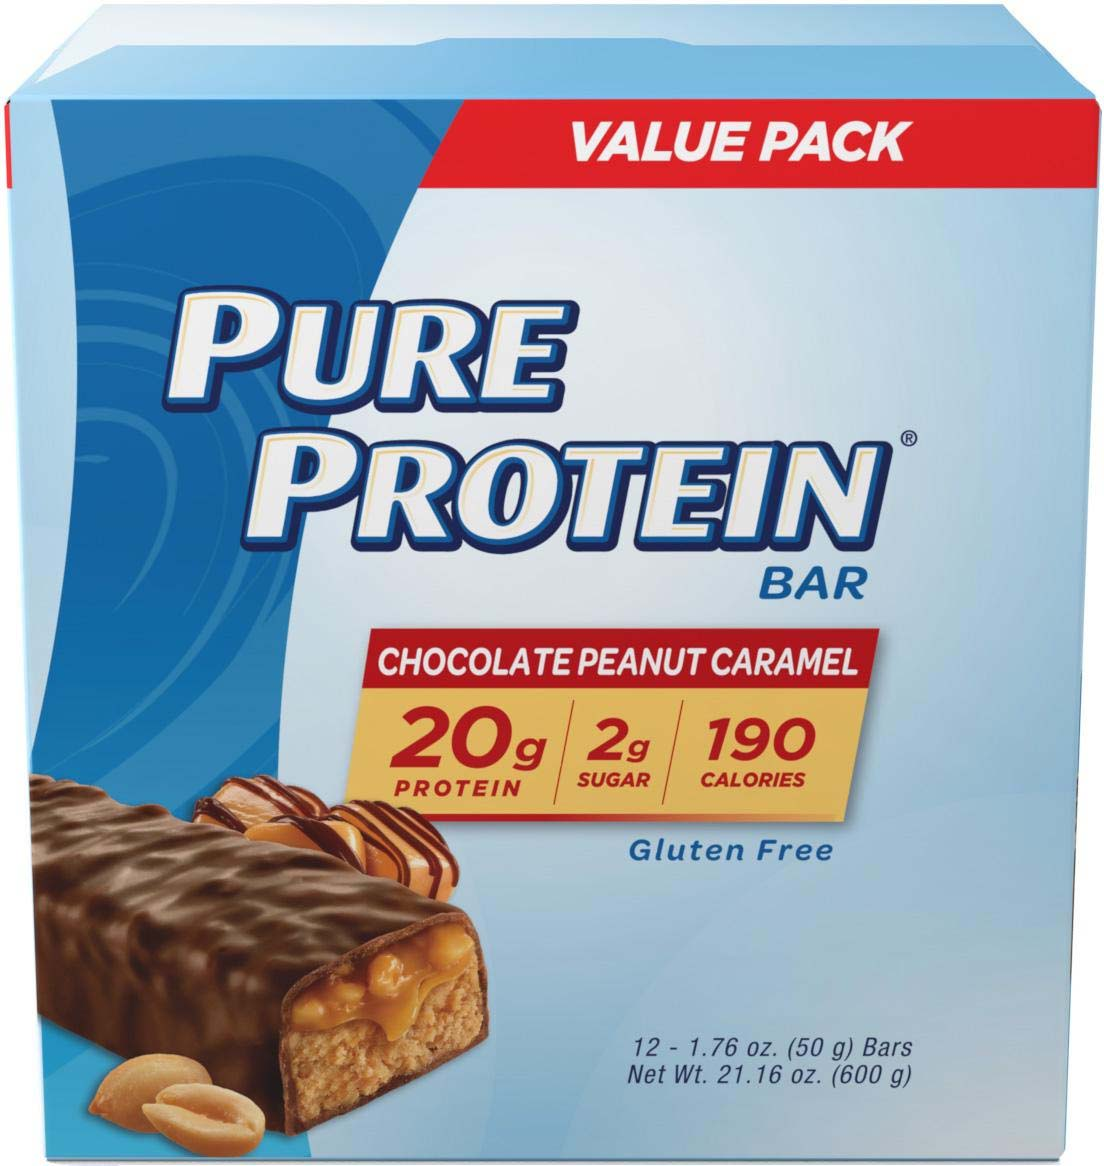 Pure Protein Bar, Chocolate Peanut Caramel, 20g Protein, 12 Ct